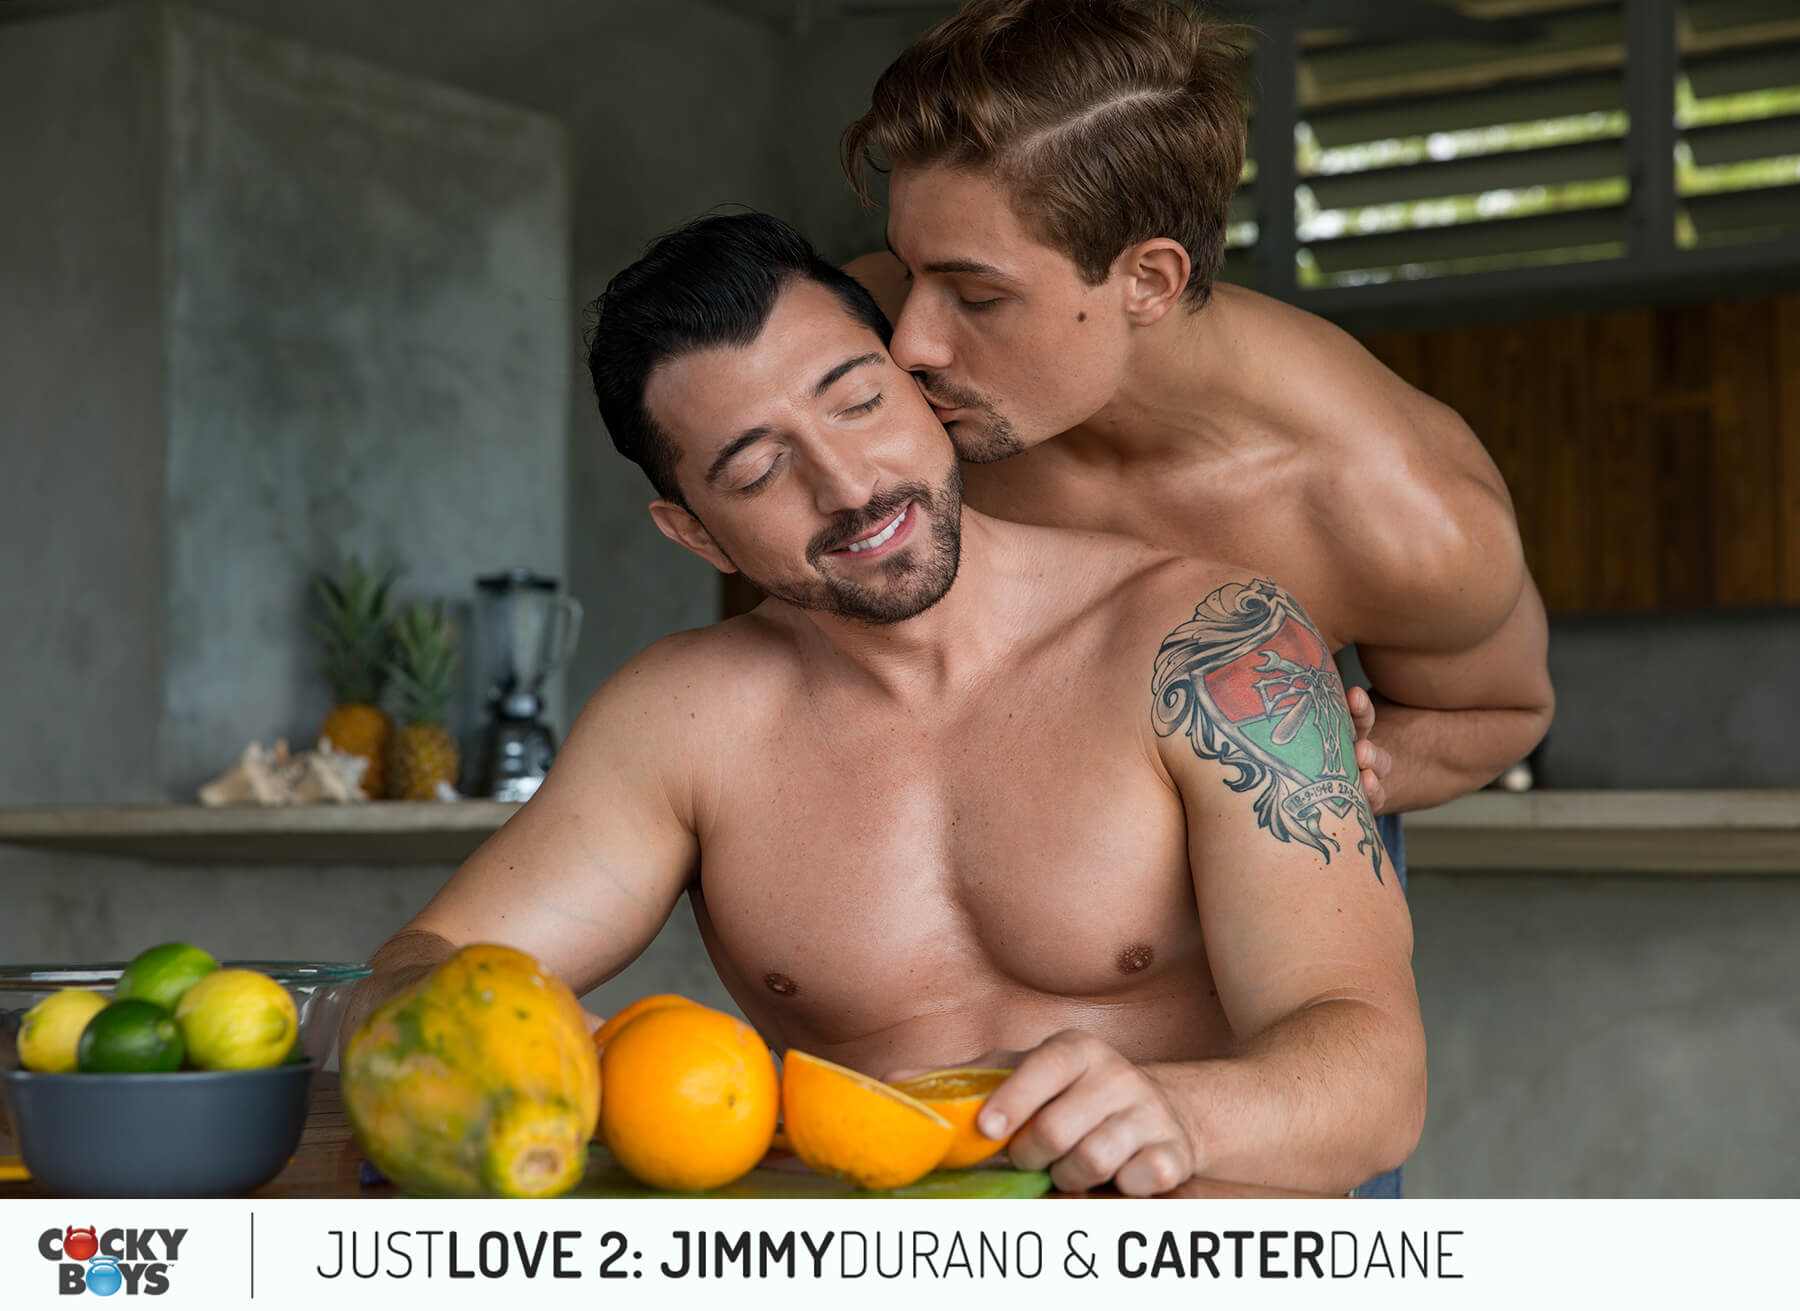 cocky boys just love 2 carter dane and jimmy durano gay porn blog image 72